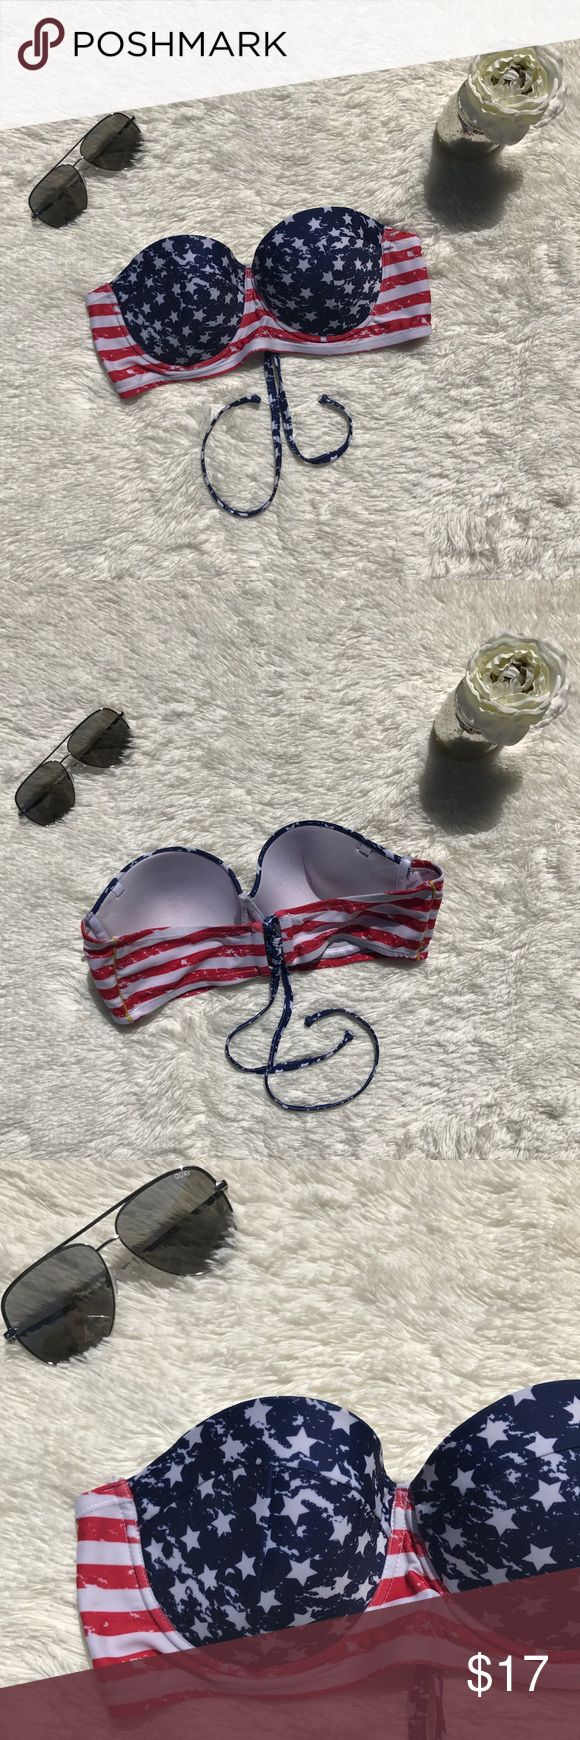 Marilyn Monroe American Flag Bathing Suit Top Marilyn Monroe American Flag Swim Top. A perfect piece to show off your patriotism. Has ties to use around the neck for extra support as well as underwire. Pair with your favorite bottom. Size XL. Marilyn Monroe Swim Bikinis